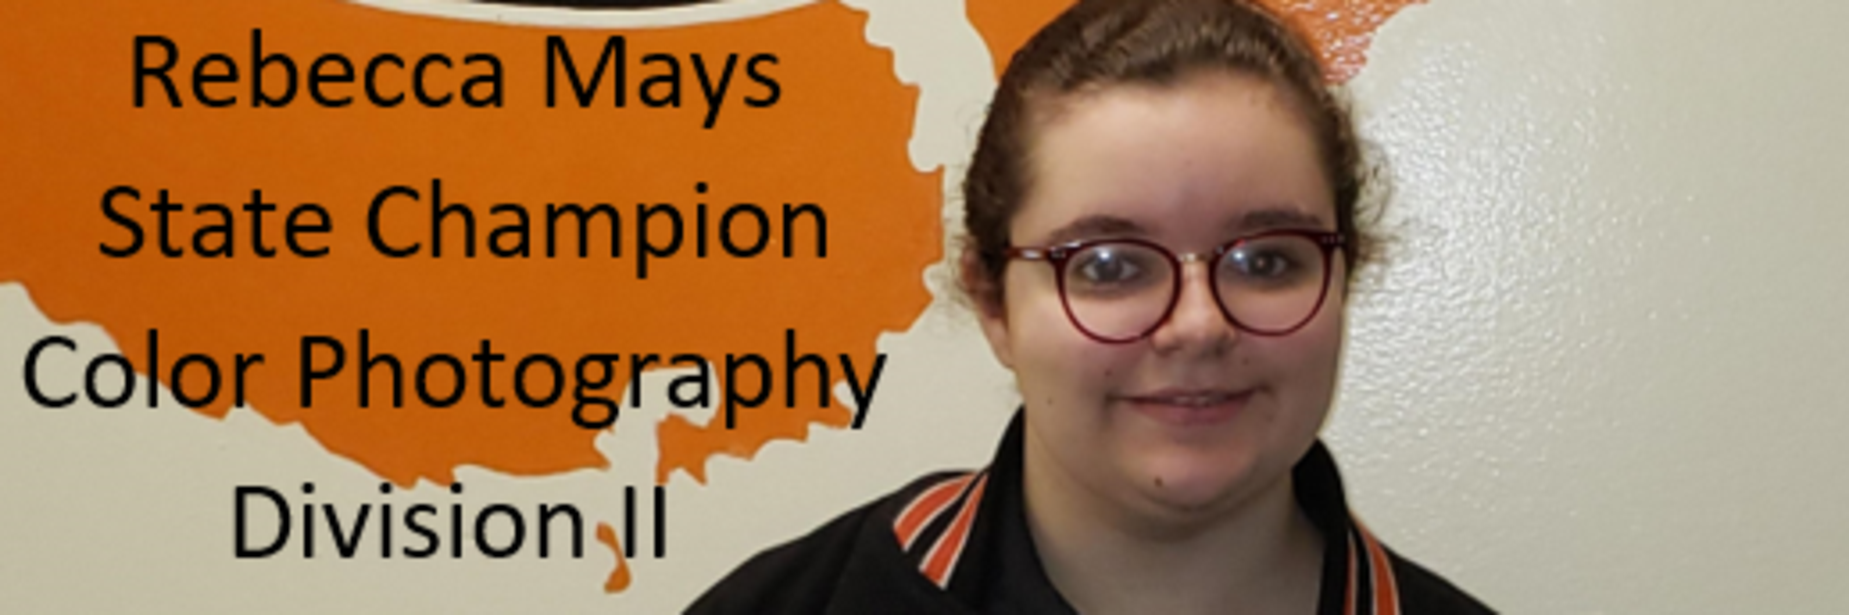 Rebecca Mays, State Champion Beta Club, Color Photography